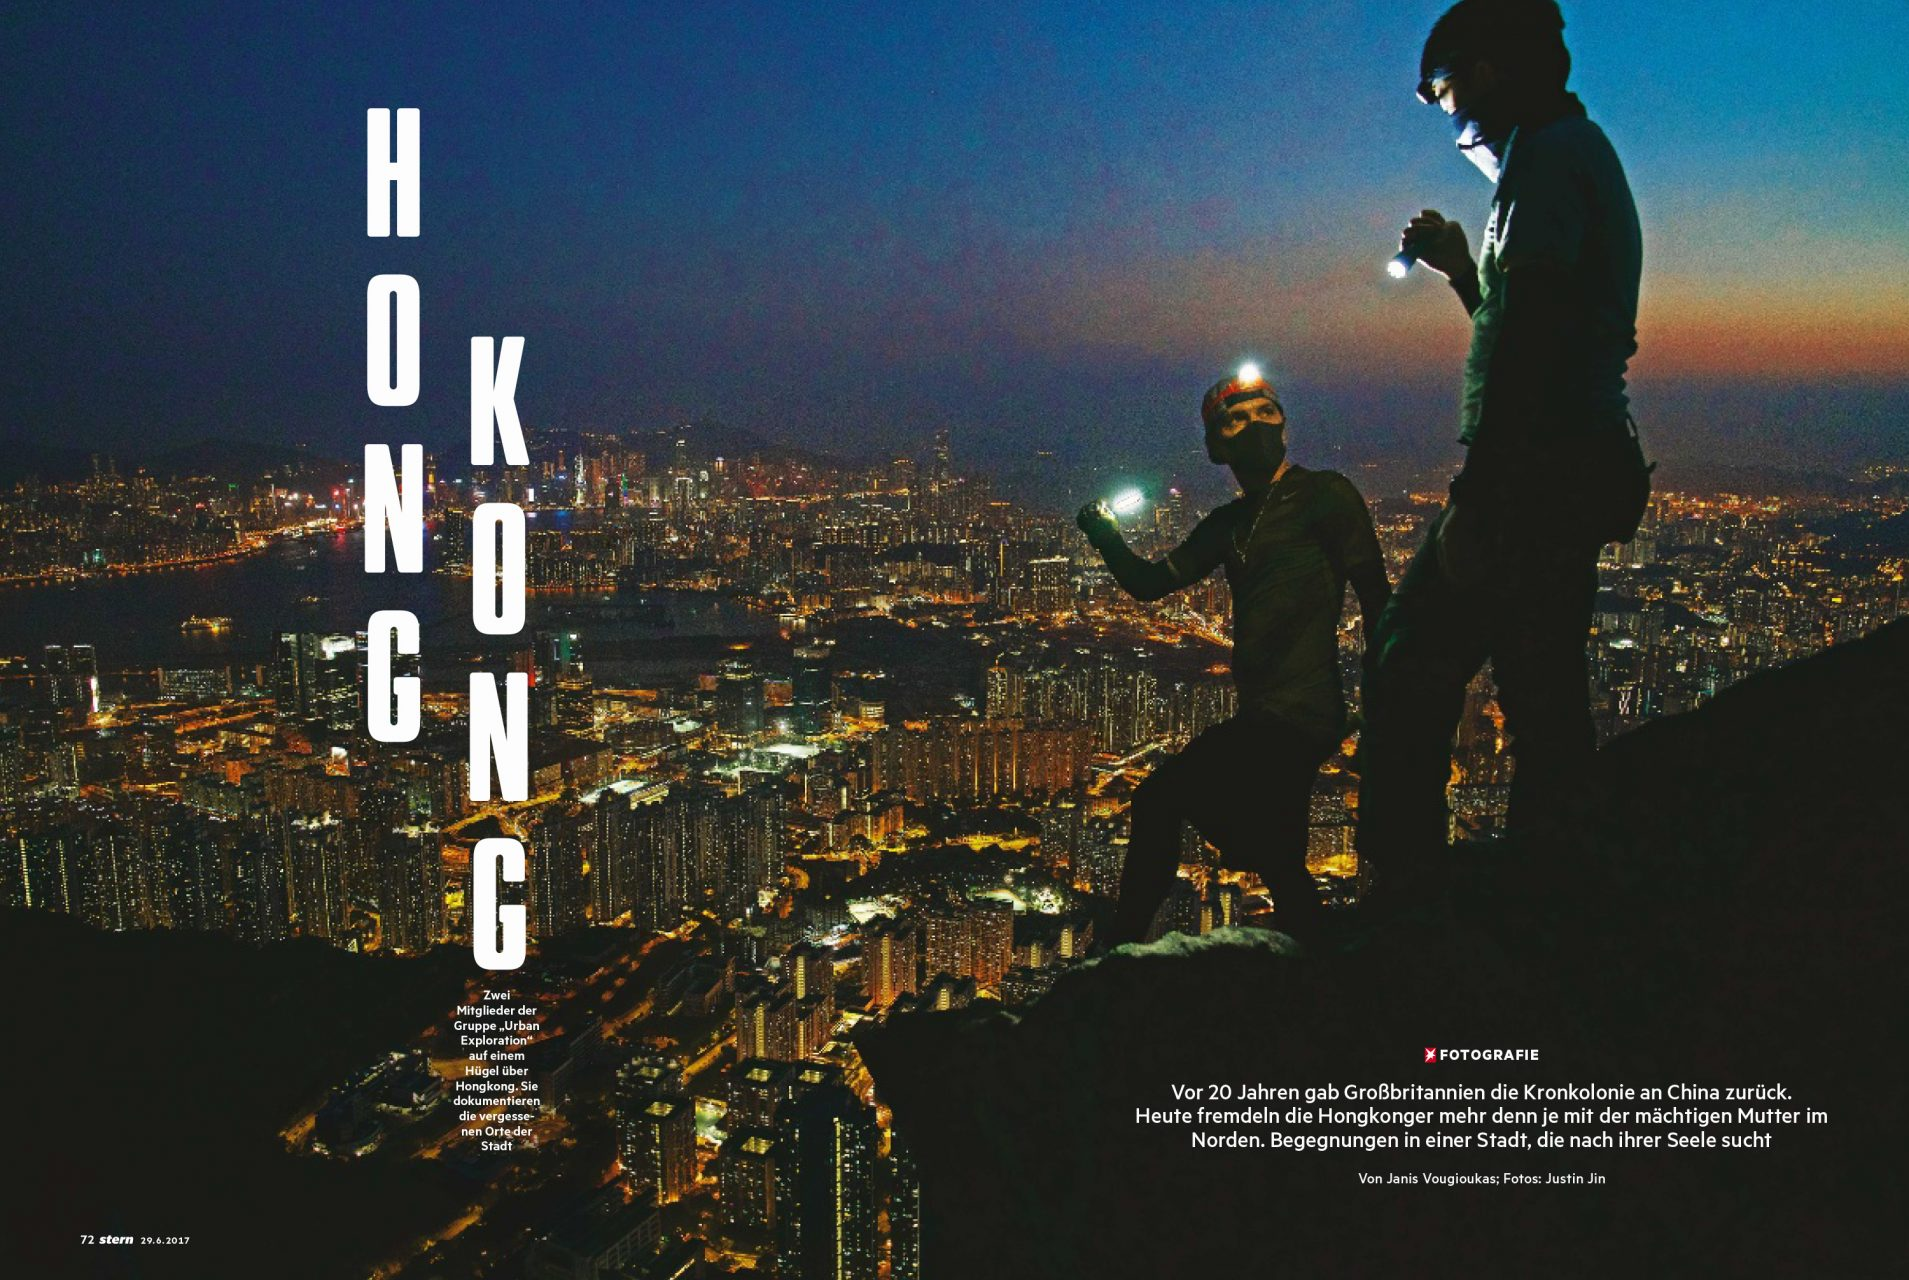 Tearsheet stern HK 20 years 01